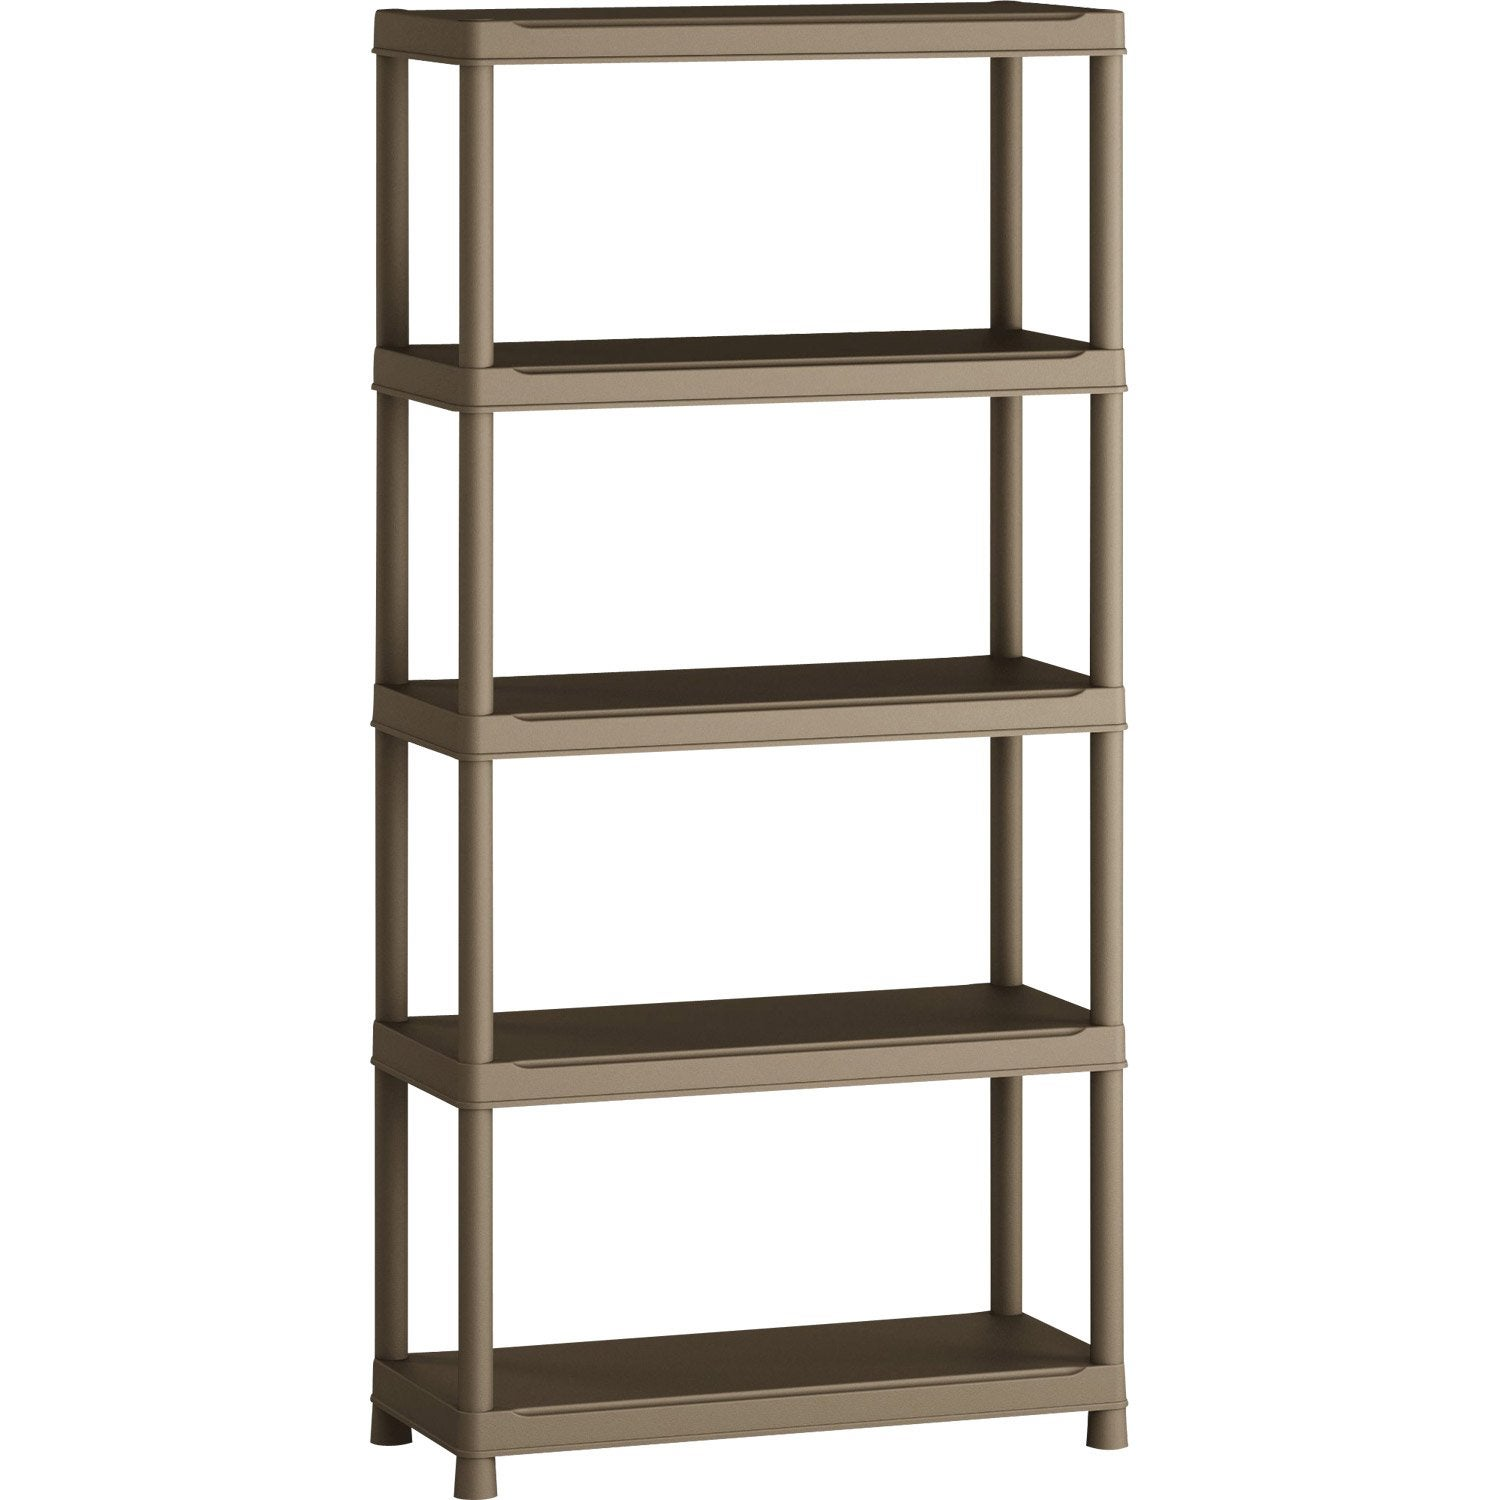 Etag re r sine spaceo 5 tablettes terre l90xh181xp40 cm leroy merlin - Etagere garage leroy merlin ...